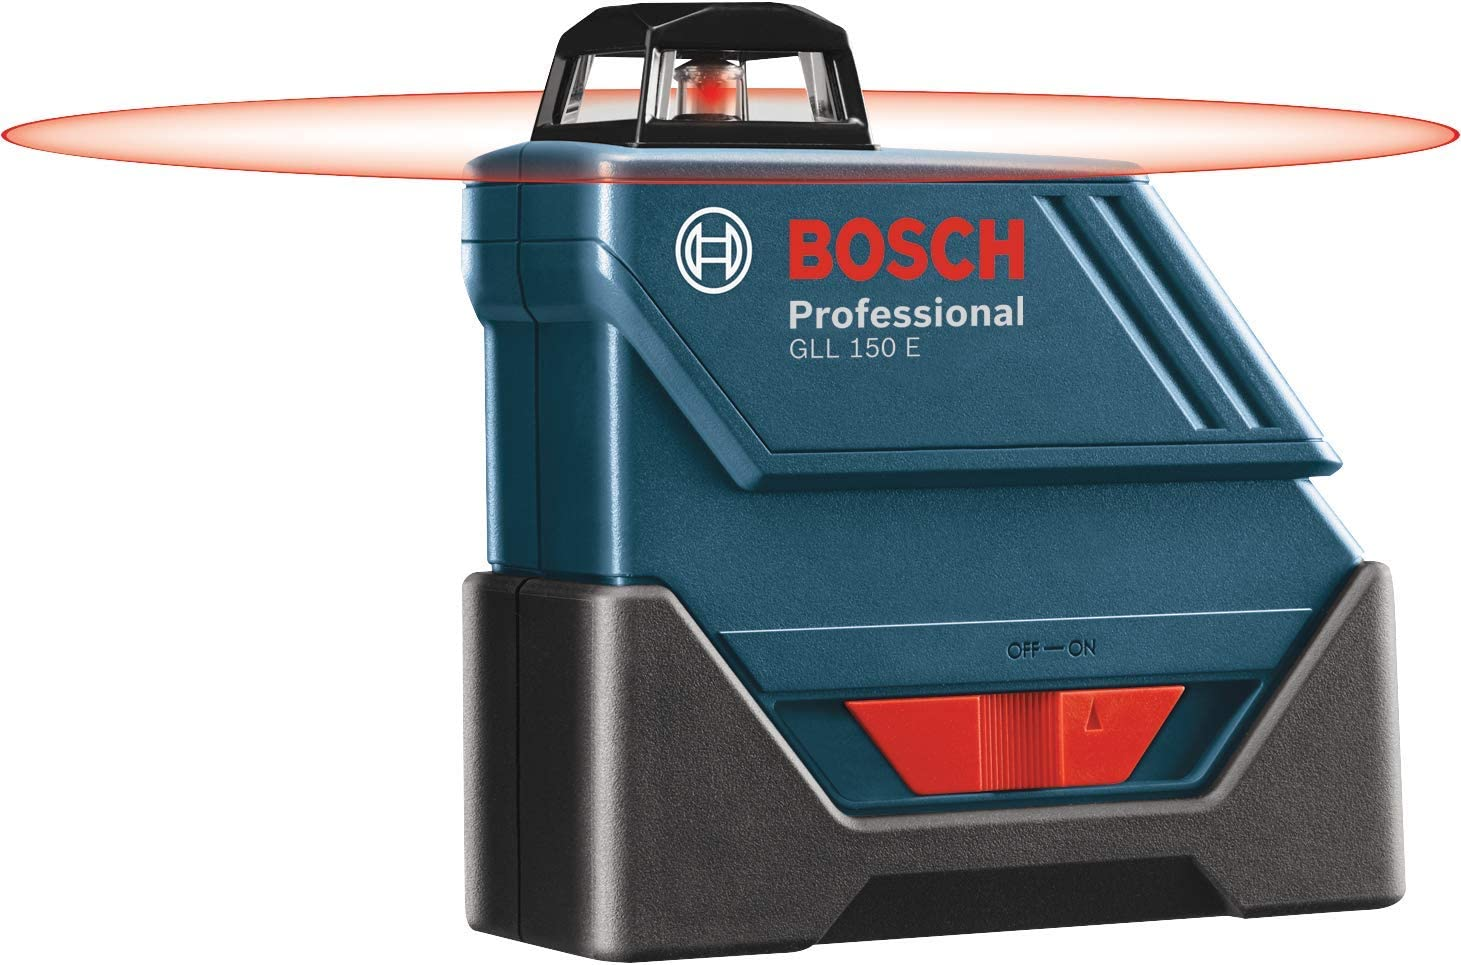 Bosch Test and Measurement Bosch 360-Degree Self-Leveling Exterior Laser Kit GLL 150 ECK